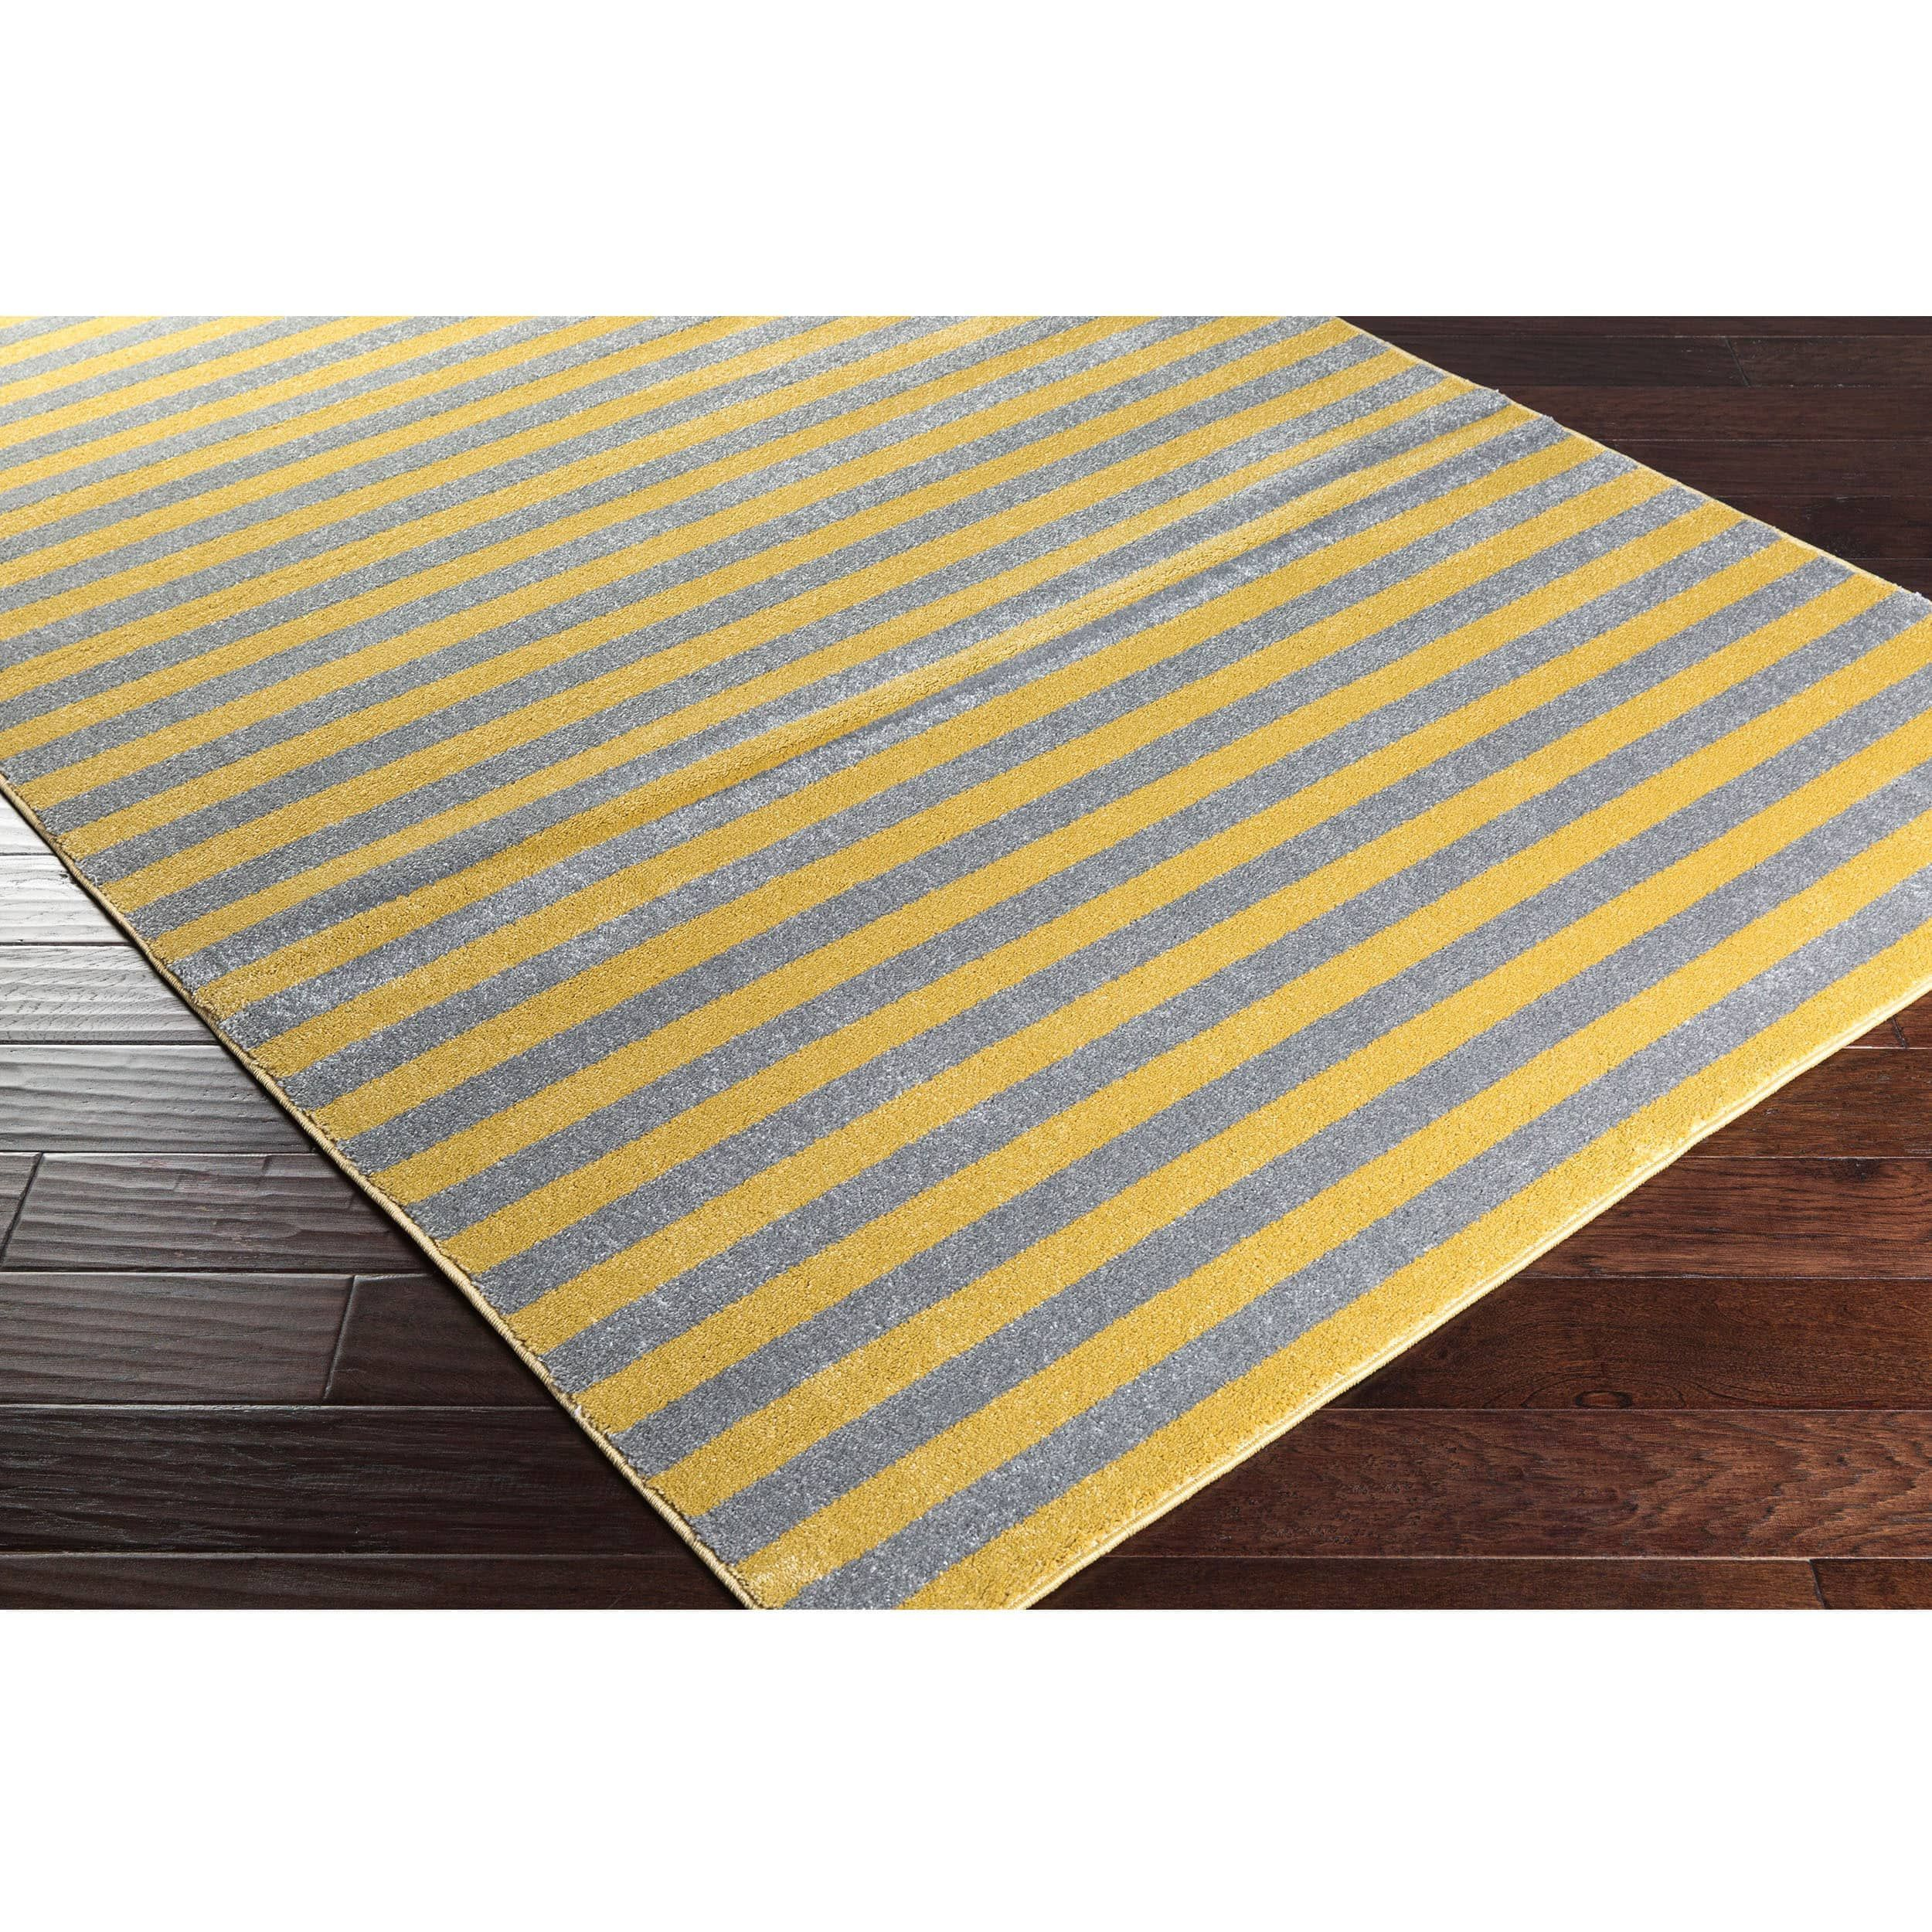 Meticulously Woven Haguenau Casual Striped Area Rug (5\'3 x 7\'3 ...